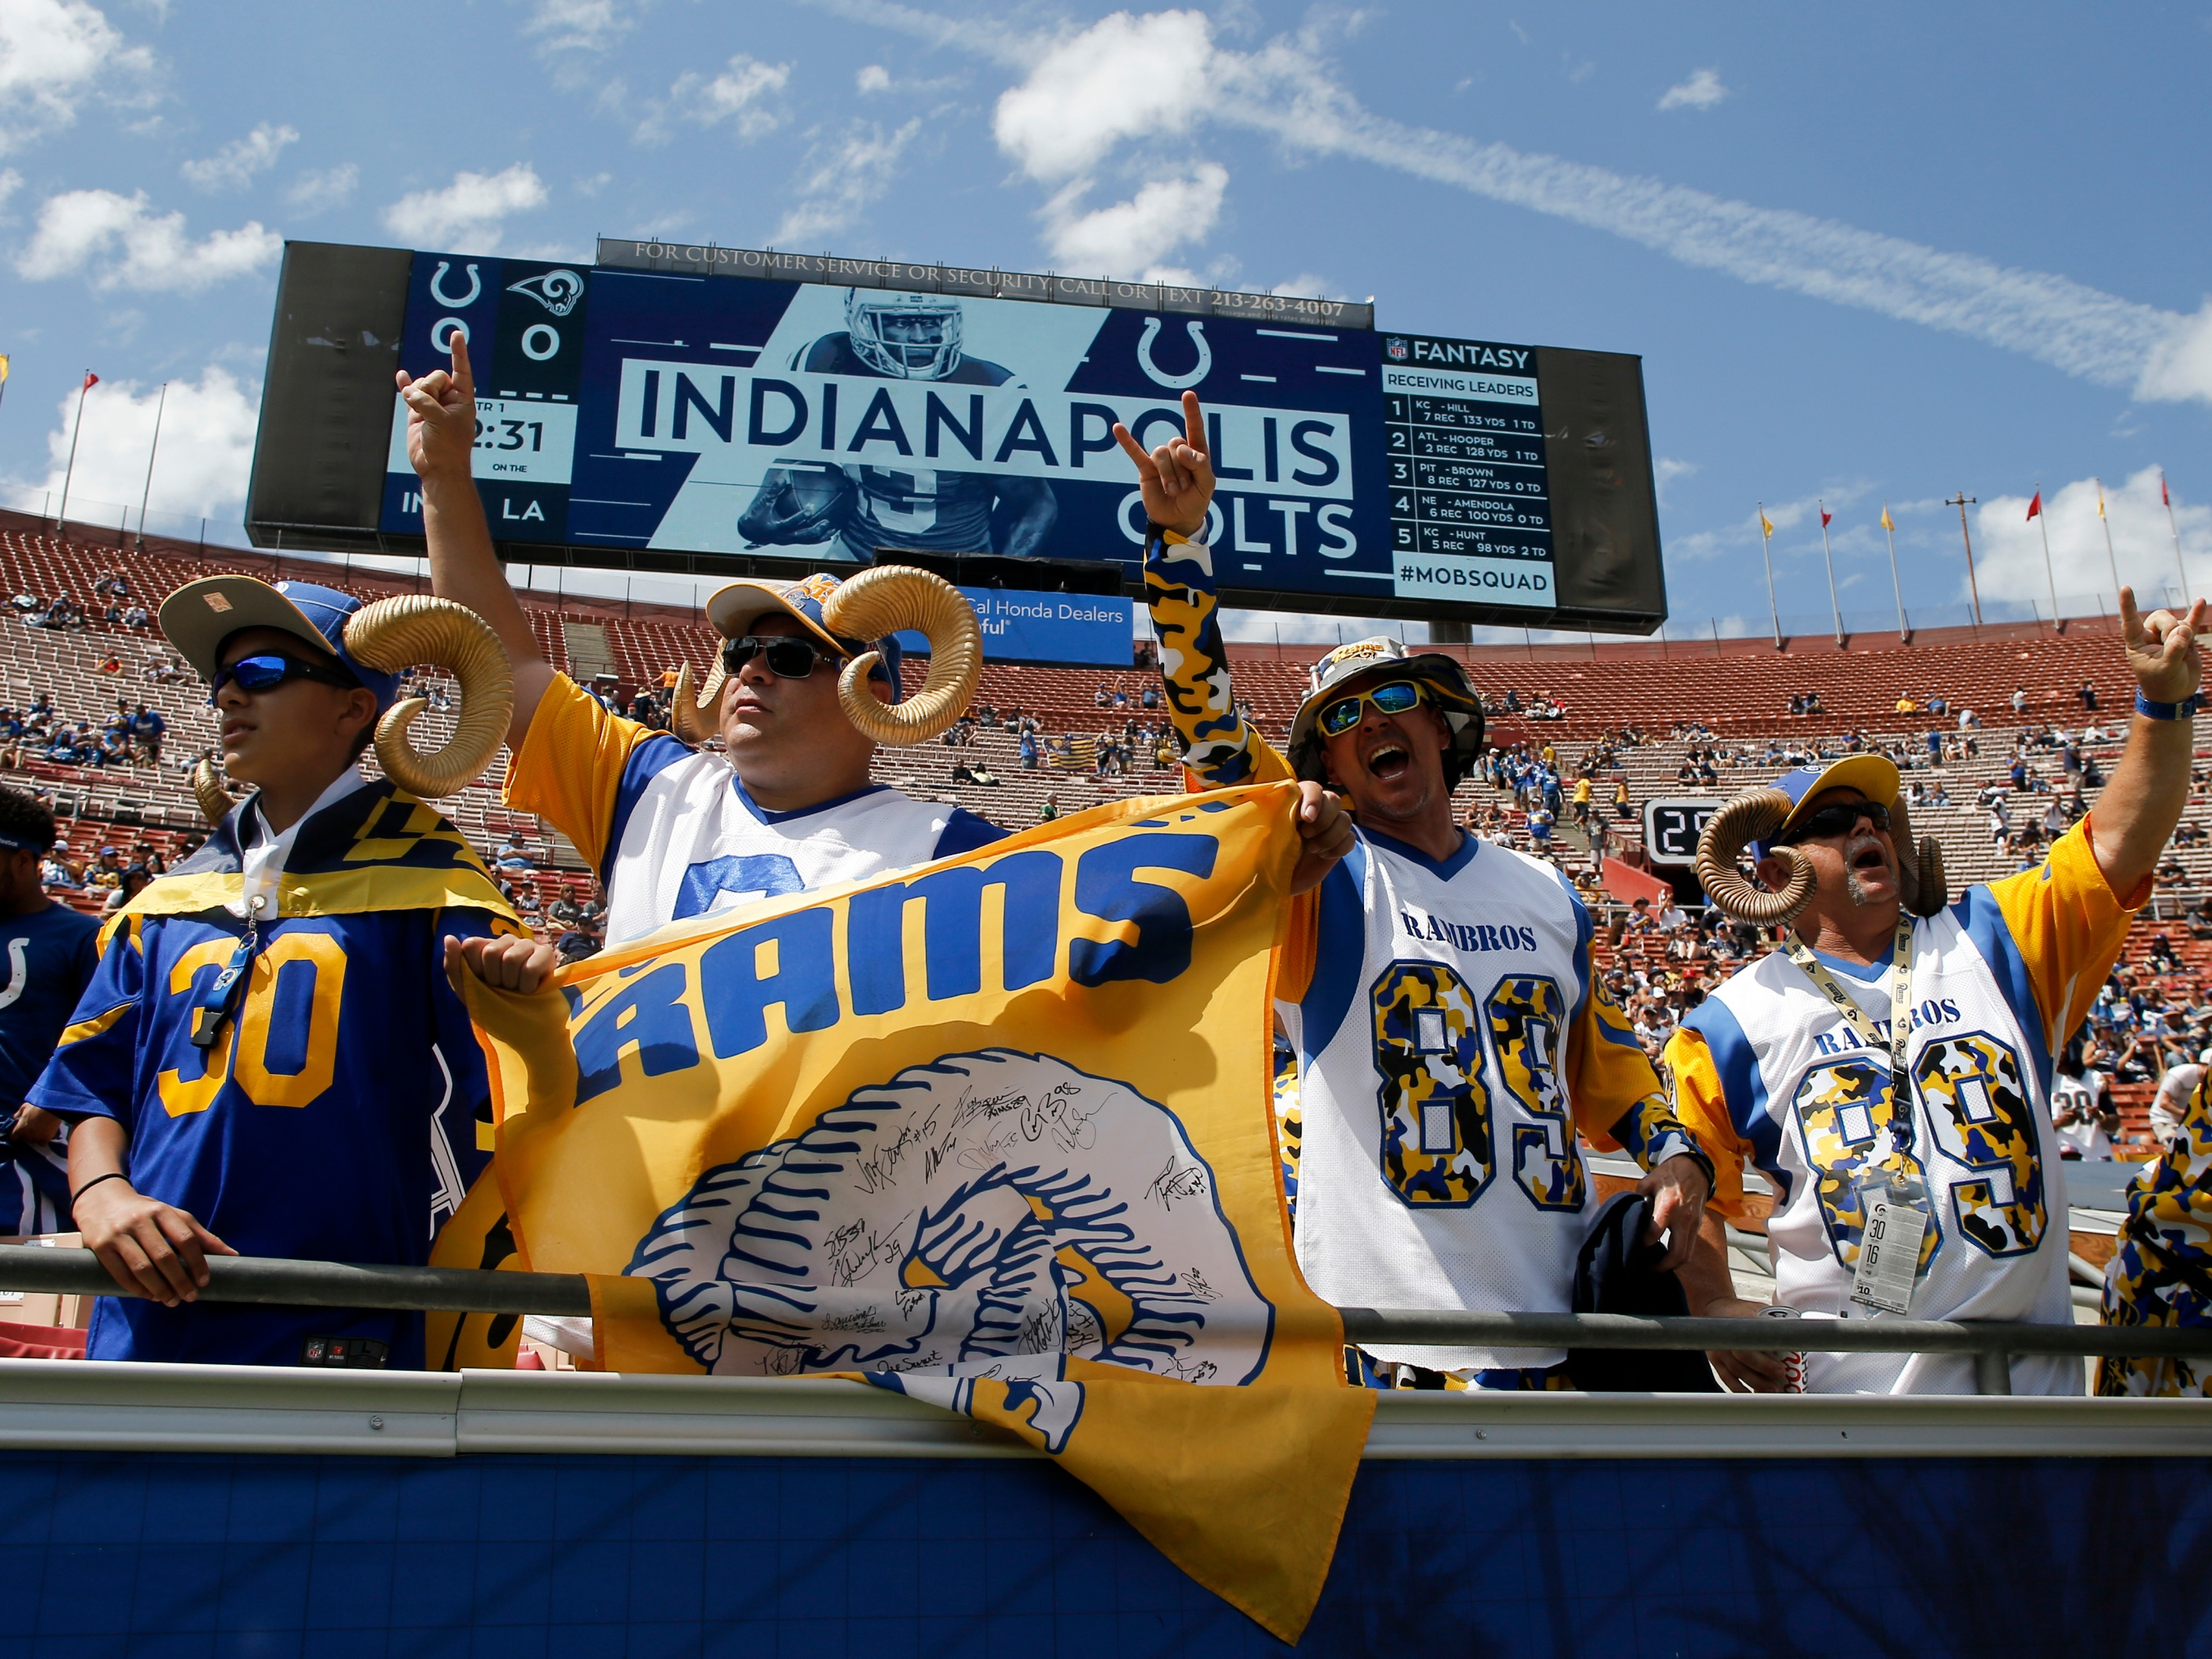 c22c667d35d The Rams Are Suffering The NFL's Worst Attendance Decline In Decades ...